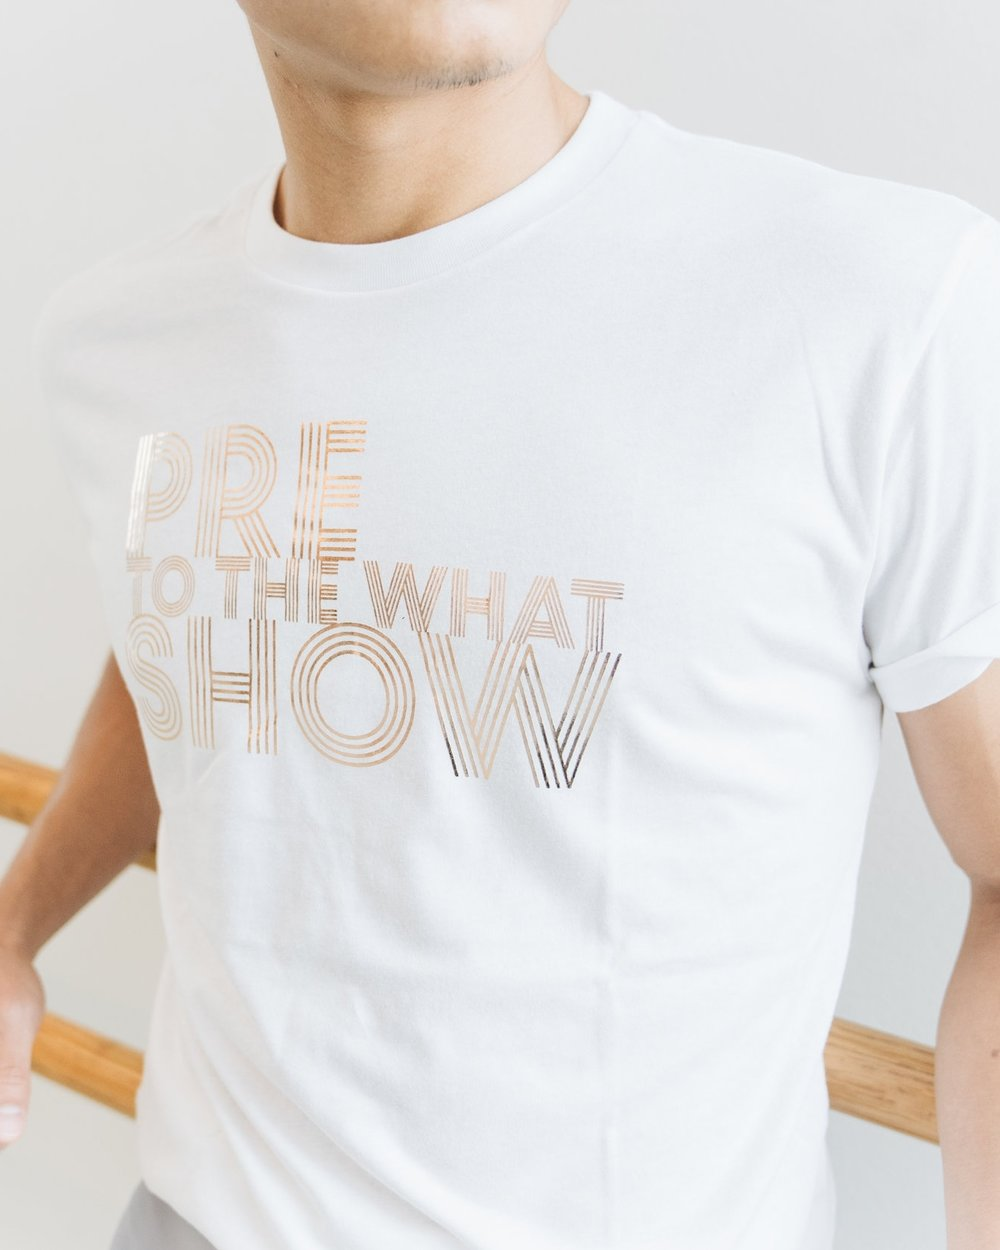 The Pre-Show Tee in white - $24